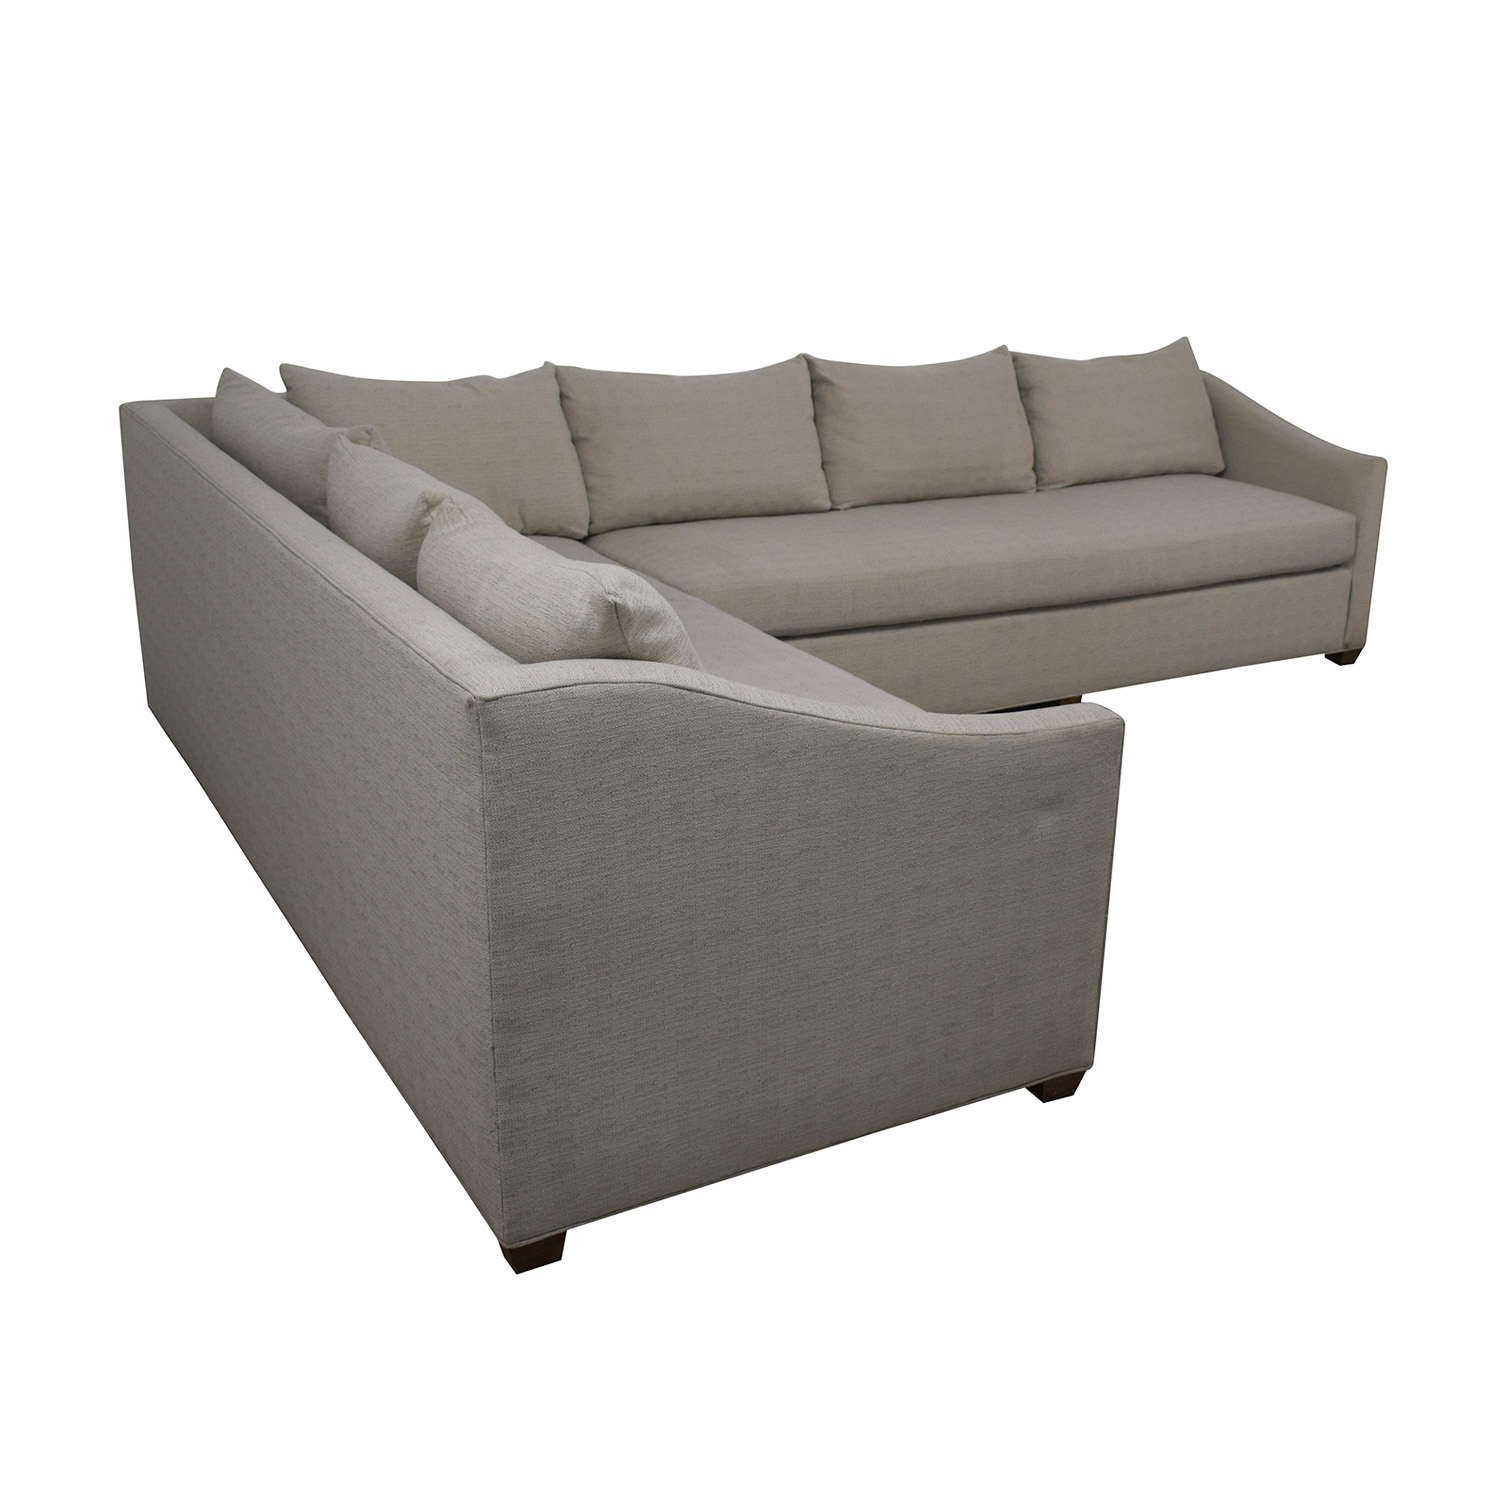 Enjoyable 84 Off Maiden Home Maiden Home Sullivan Grey L Shaped Sectional Sofas Download Free Architecture Designs Rallybritishbridgeorg